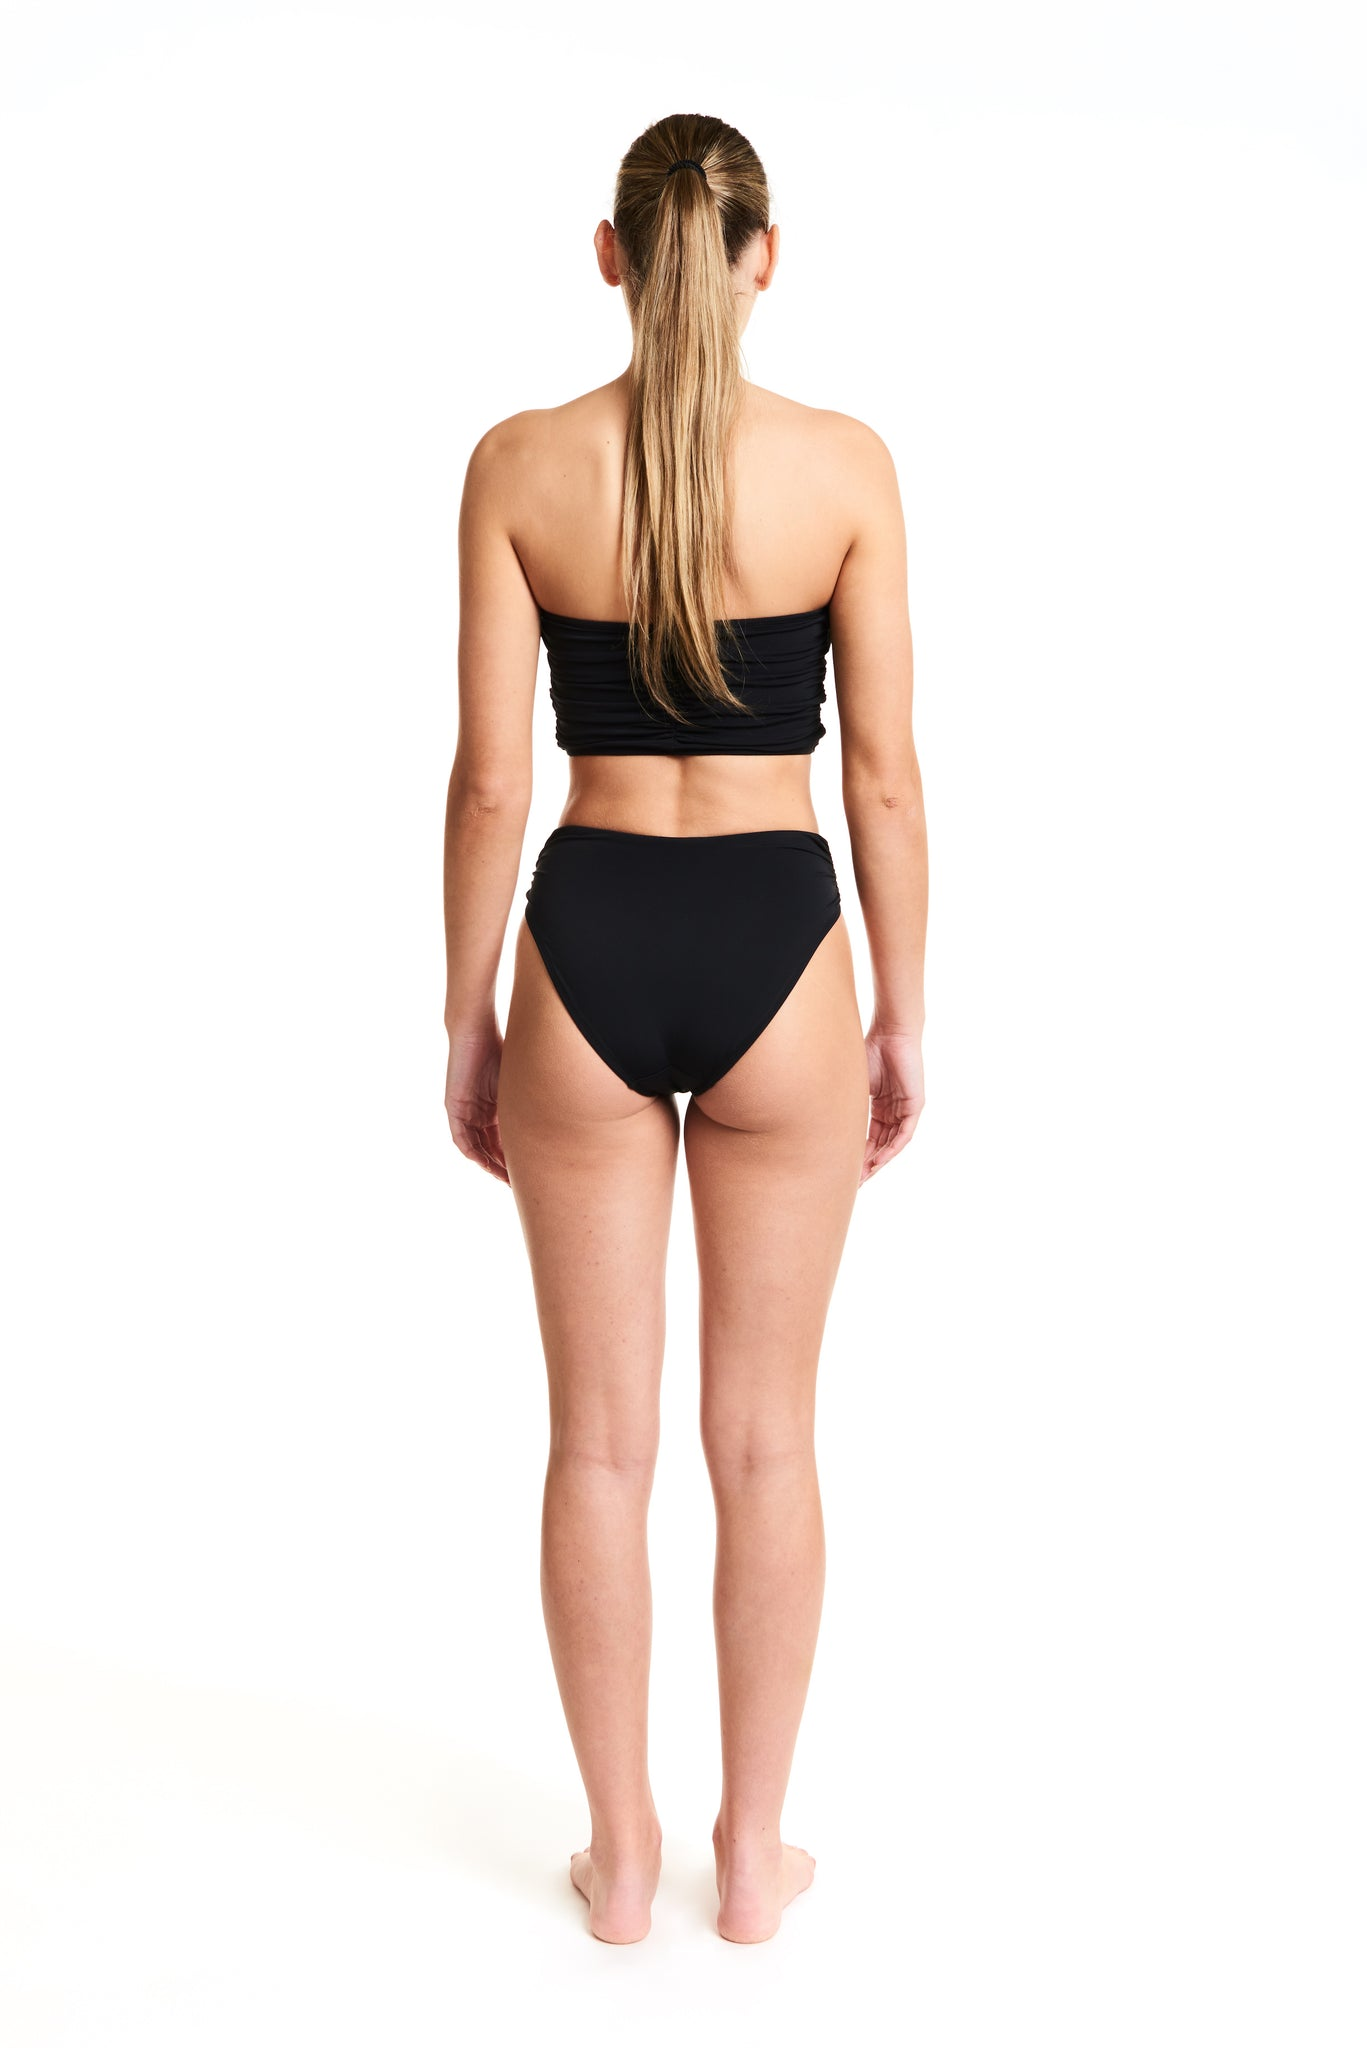 SOLID DELREY BOTTOM - BLACK